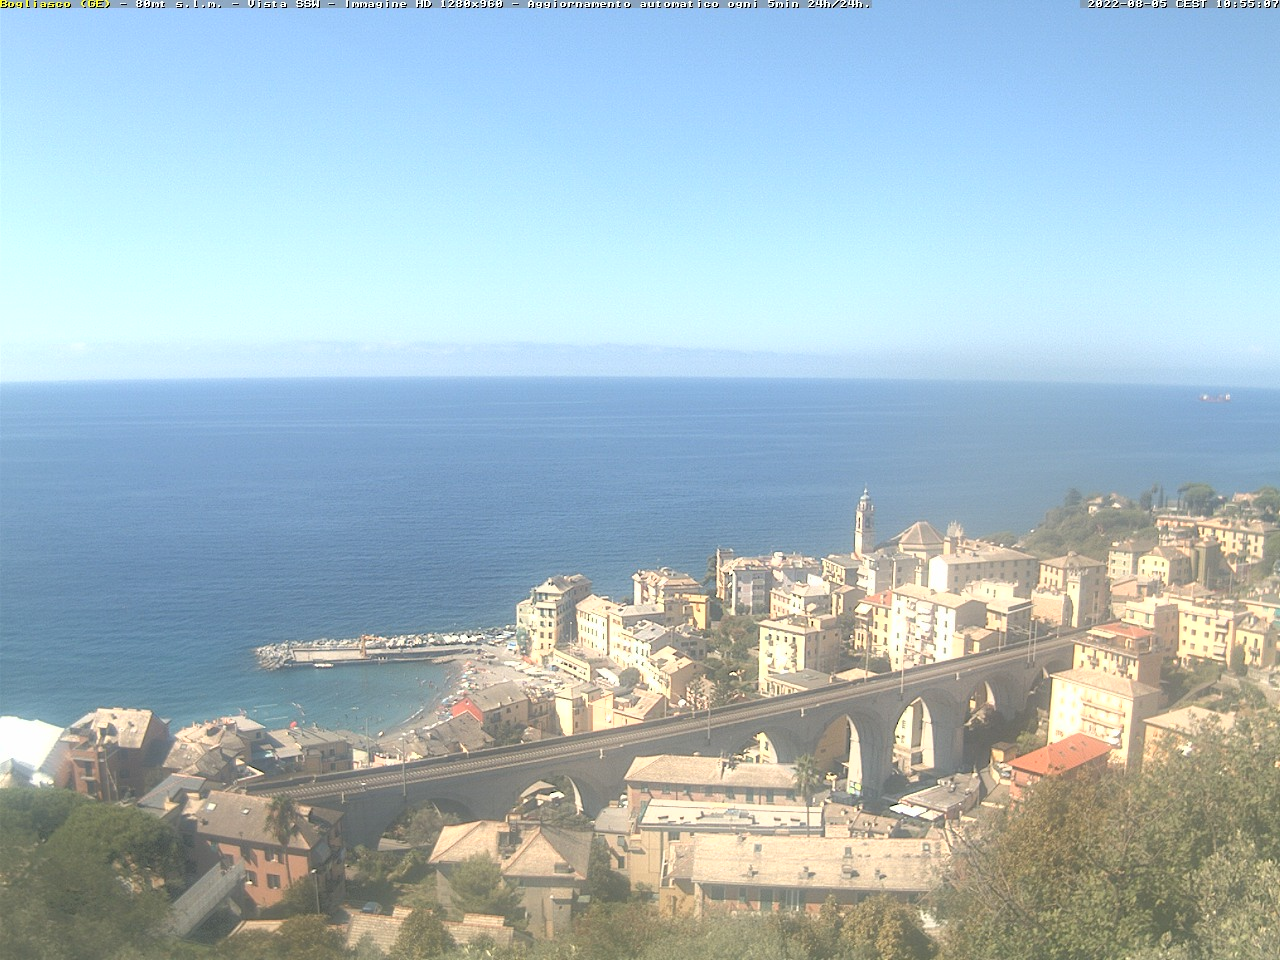 webcam bogliasco n. 693700684